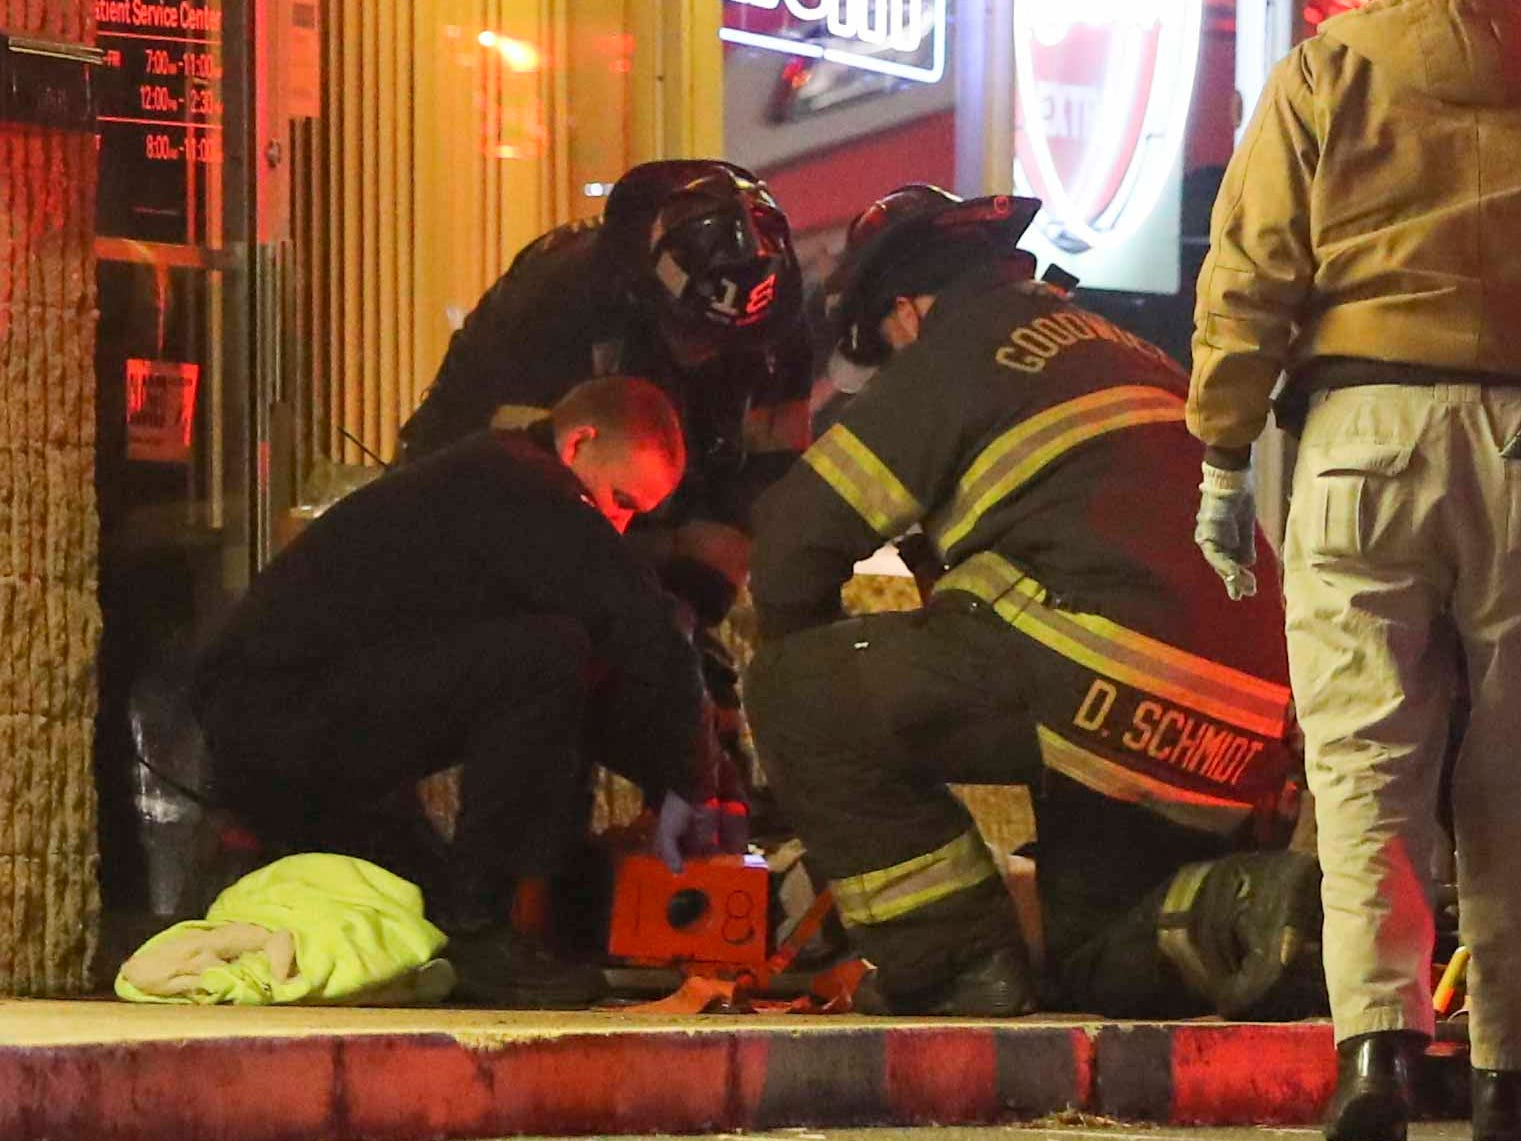 Emergency personnel tend to woman reportedly struck by a van and pinned against a storefront wall outside Casa Mariachi restaurant and bar on East Basin Road about 11:10 p.m. Friday. Information on the victim's condition is not available.